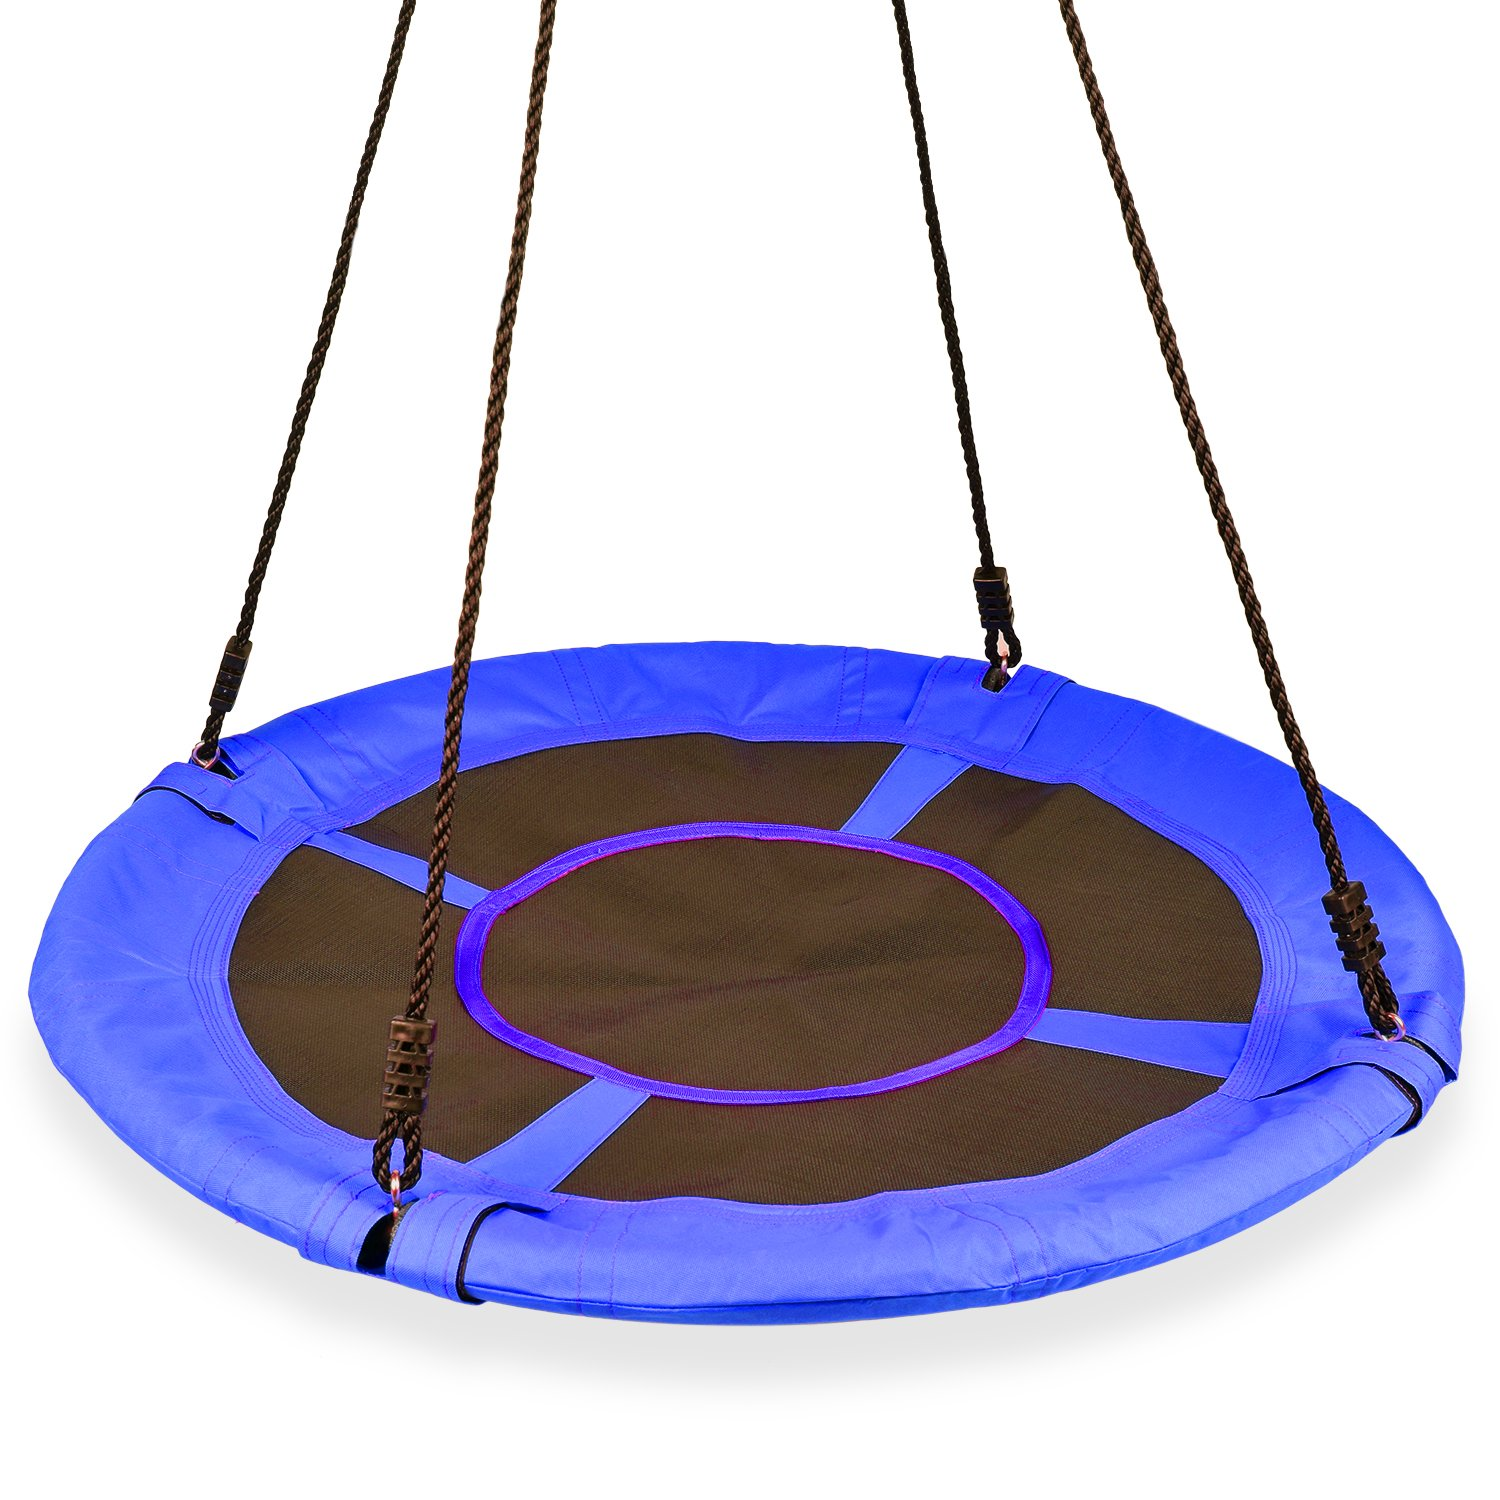 KINDEN Giant 1M/40 Saucer Spinner Swing Round - Tree Swing, Flying Swing with Friends, Family Swing, Detachable Swing, Easy Installation,330lbs Capacity,Blue(Colors May Vary) by KINDEN